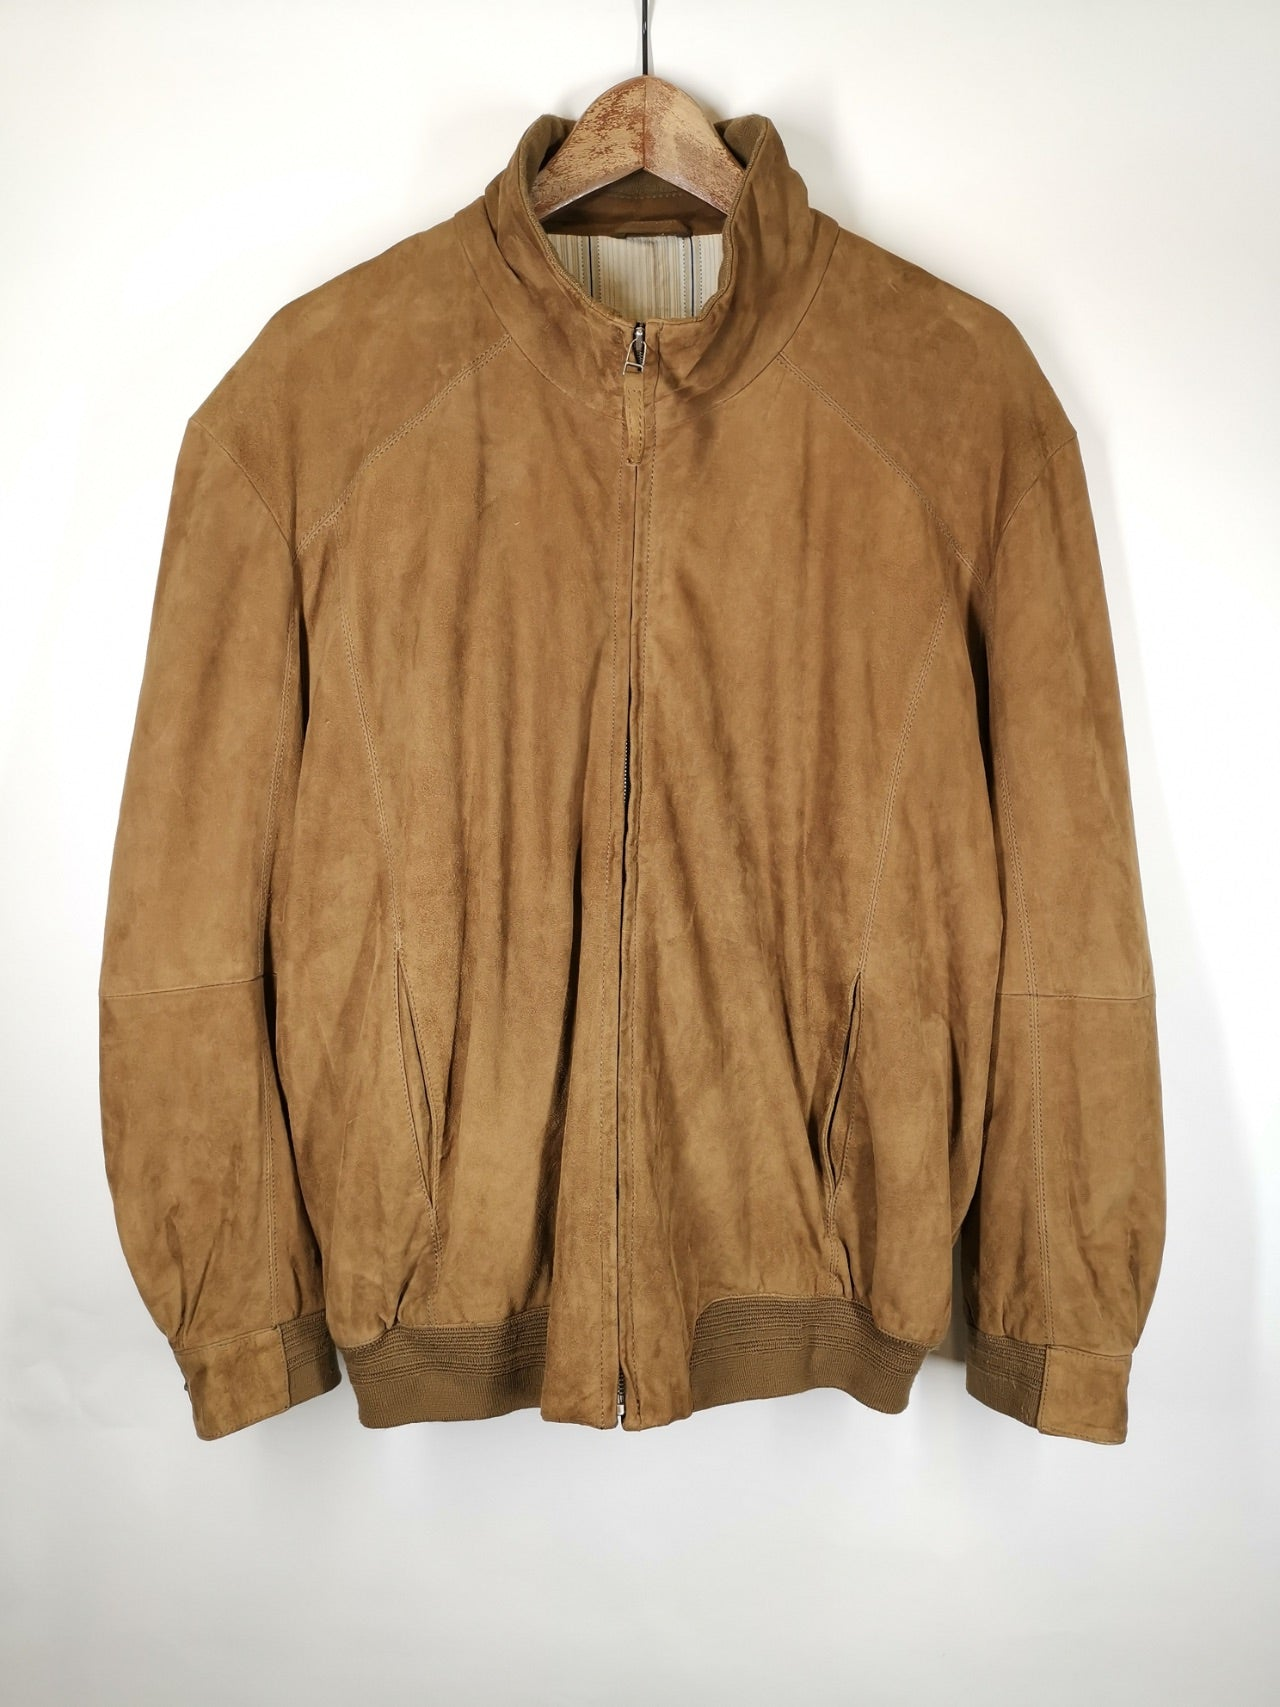 Bomber Ante Marrón Caqui / Suede Leather Jacket / Talla S-M